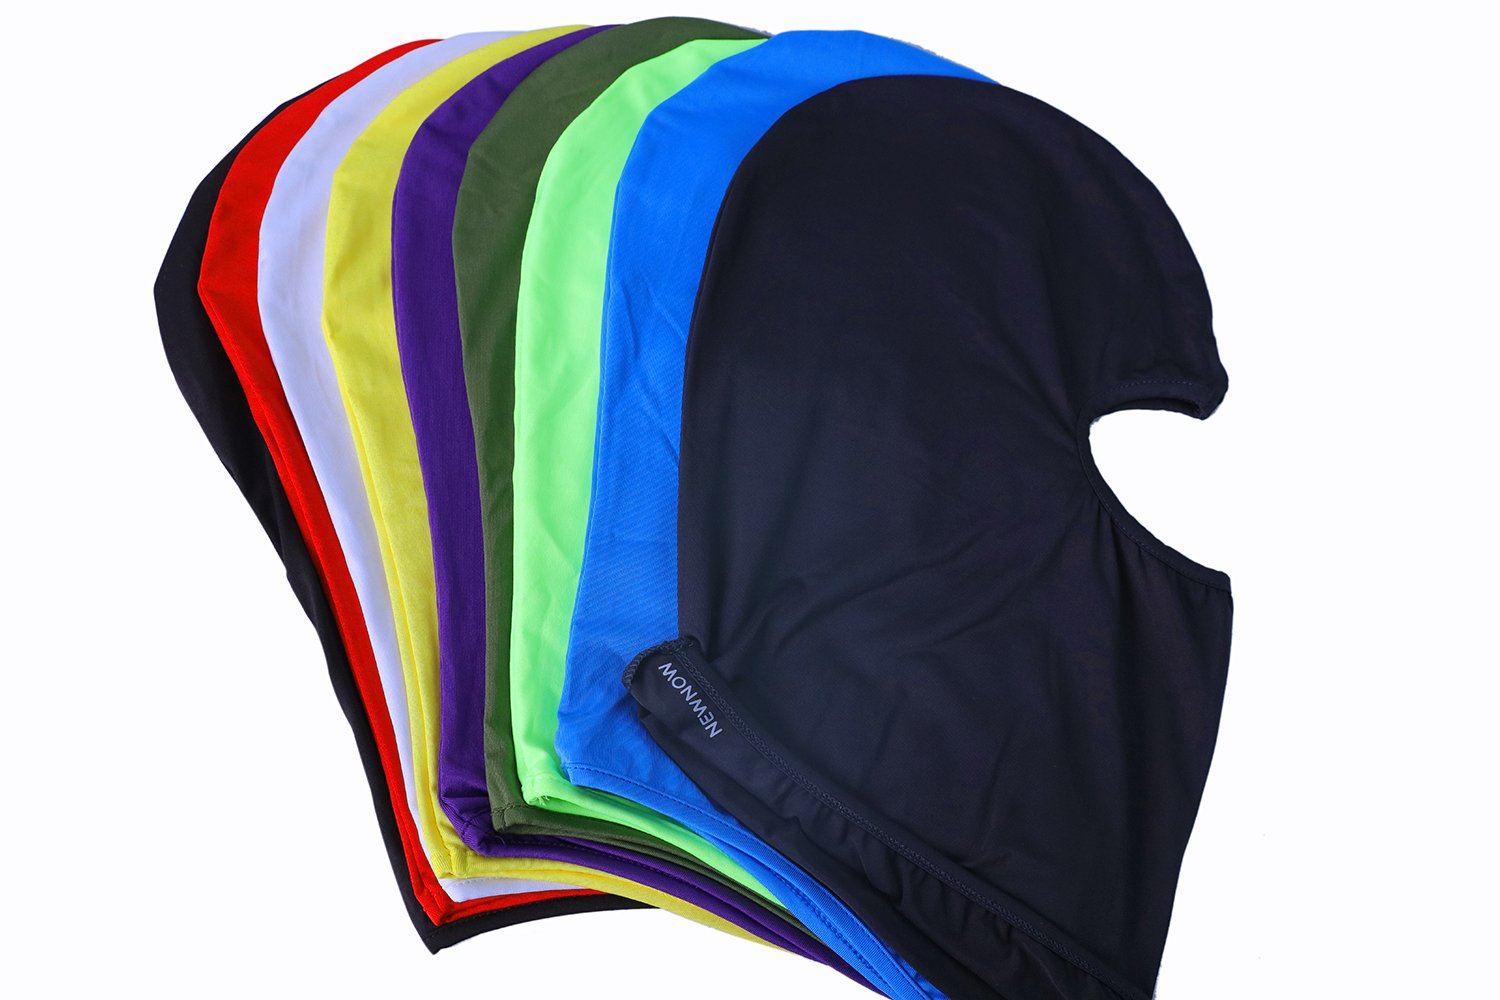 NewNow Candy Color Ultra Thin Ski Face Mask - Great Under A Bike / Football Helmet -Balaclava-White by NewNow (Image #6)